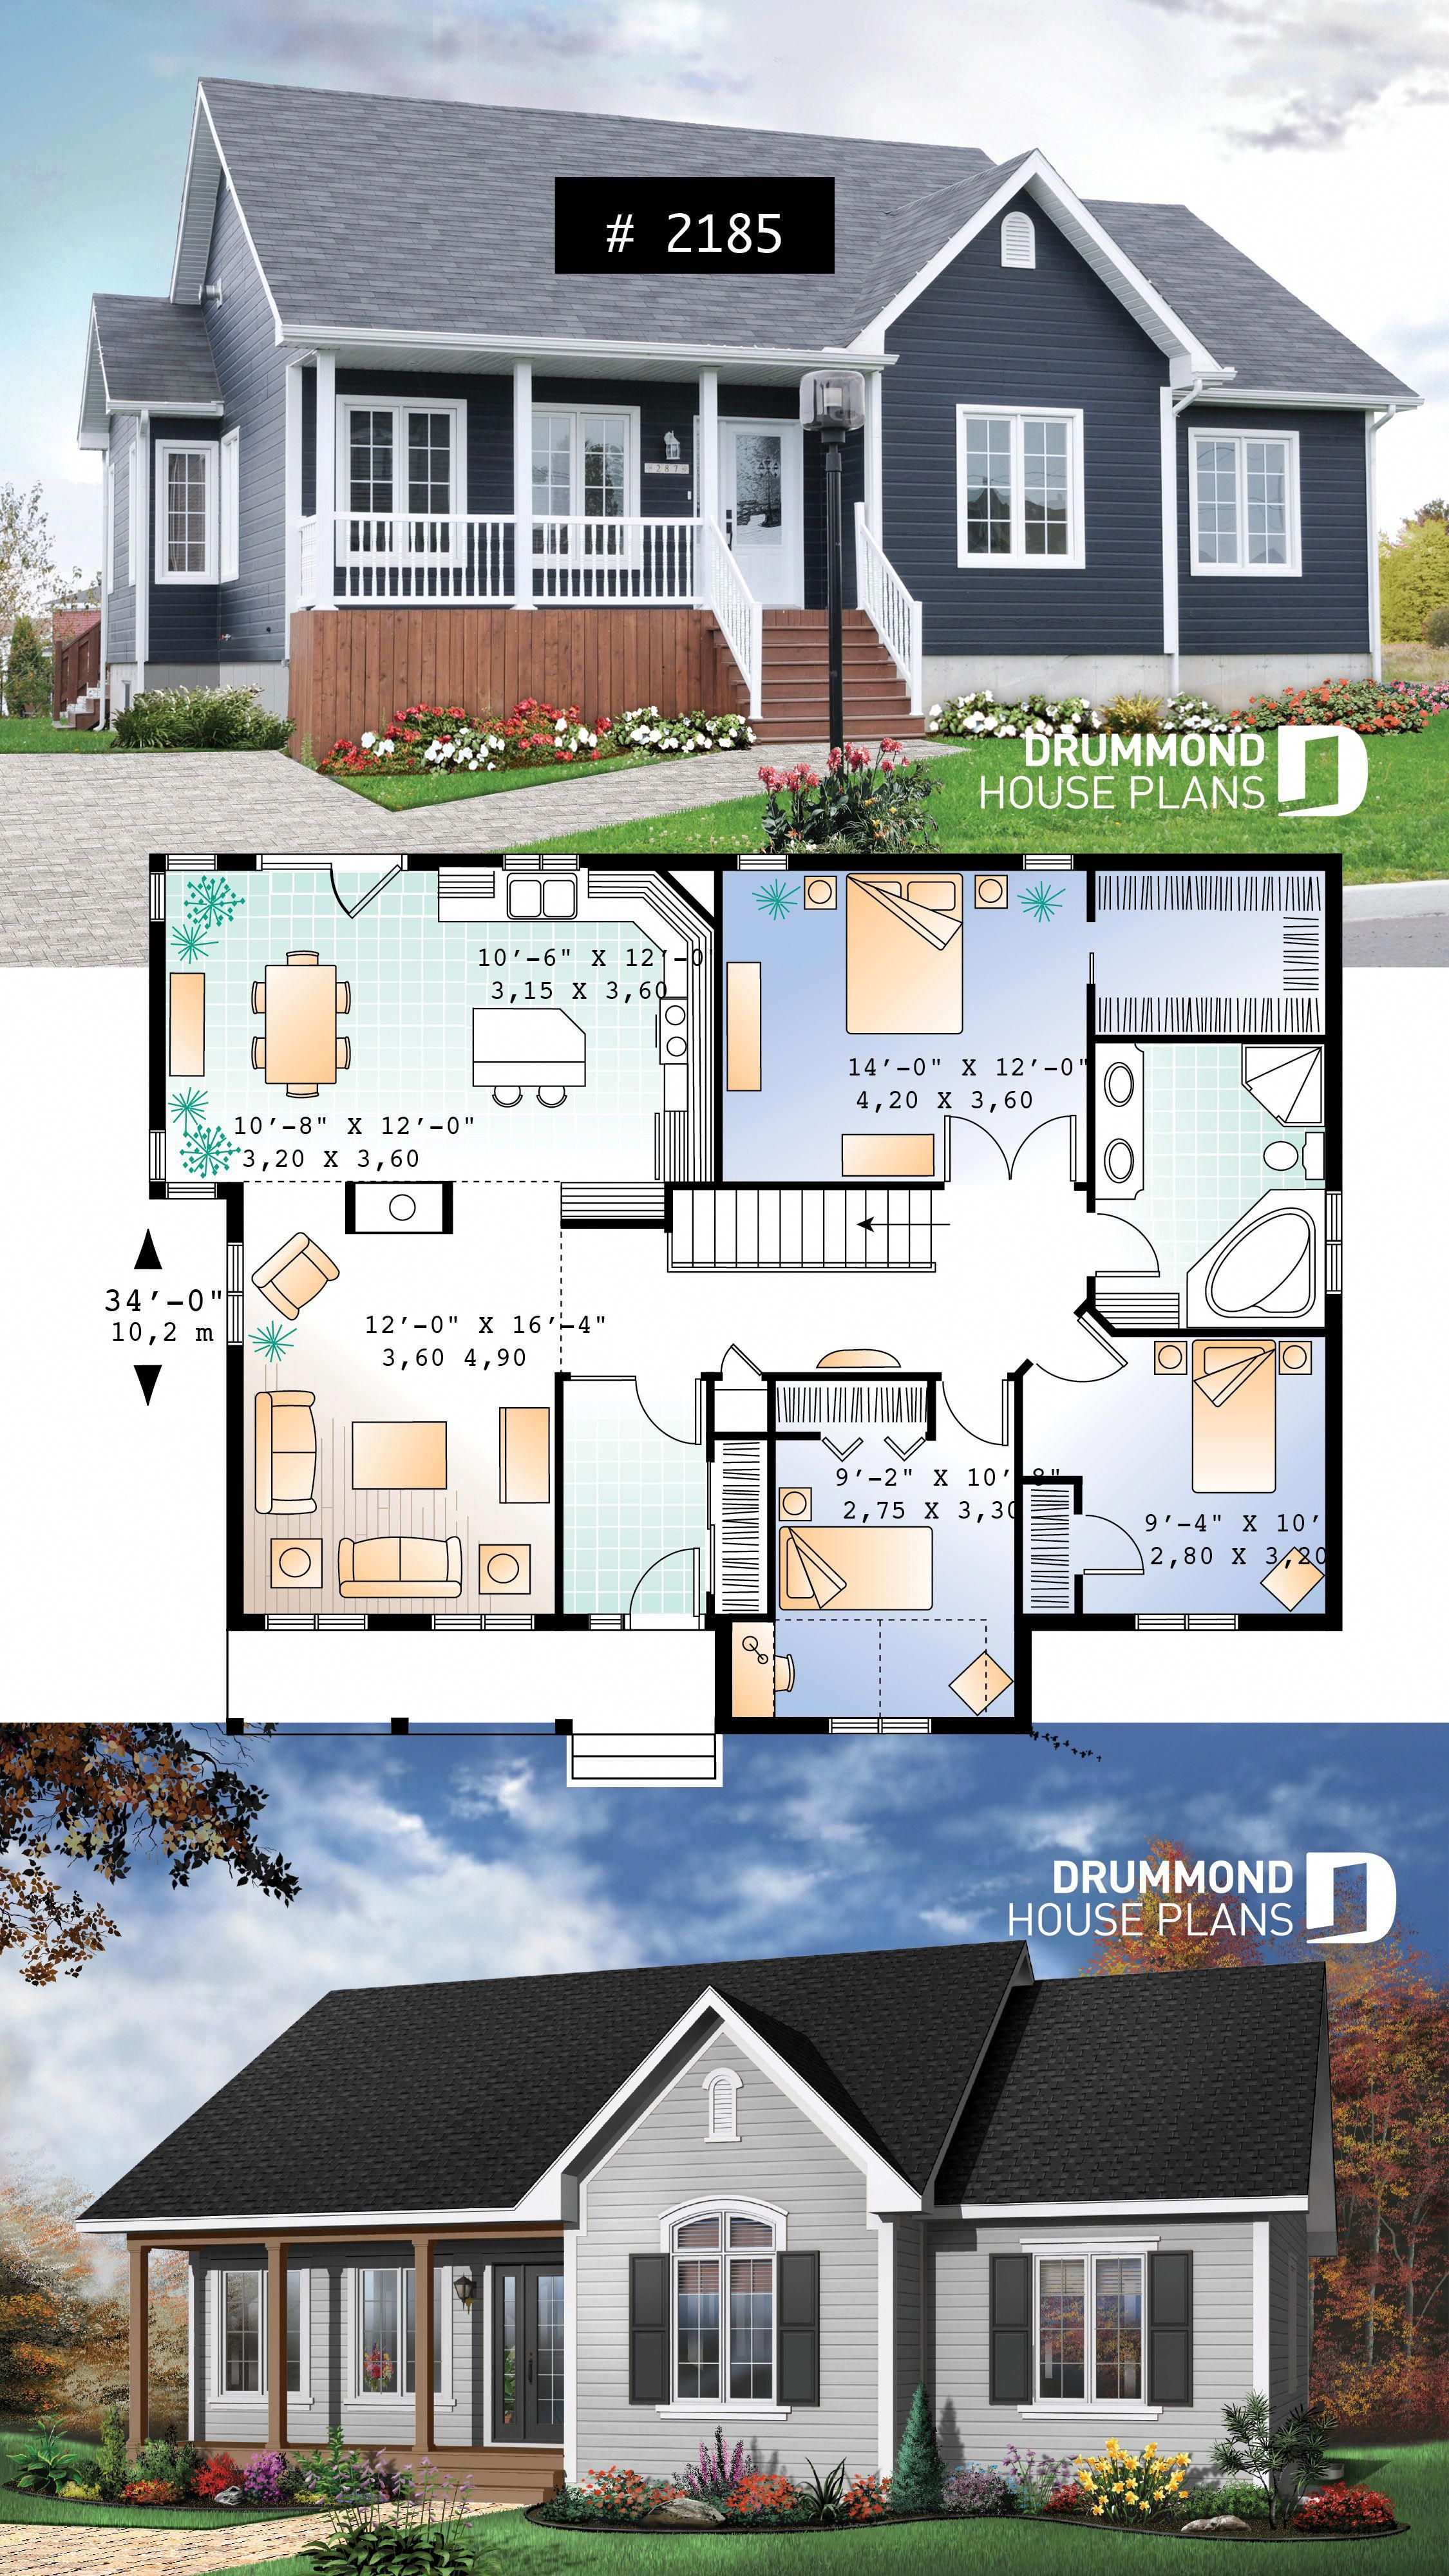 3 Bedroom Low Budget Bungalow House Plan Walk In In Master 2 Sided Fireplace 10 Celing In Family Drummond House Plans Sims House Plans Bungalow House Plans